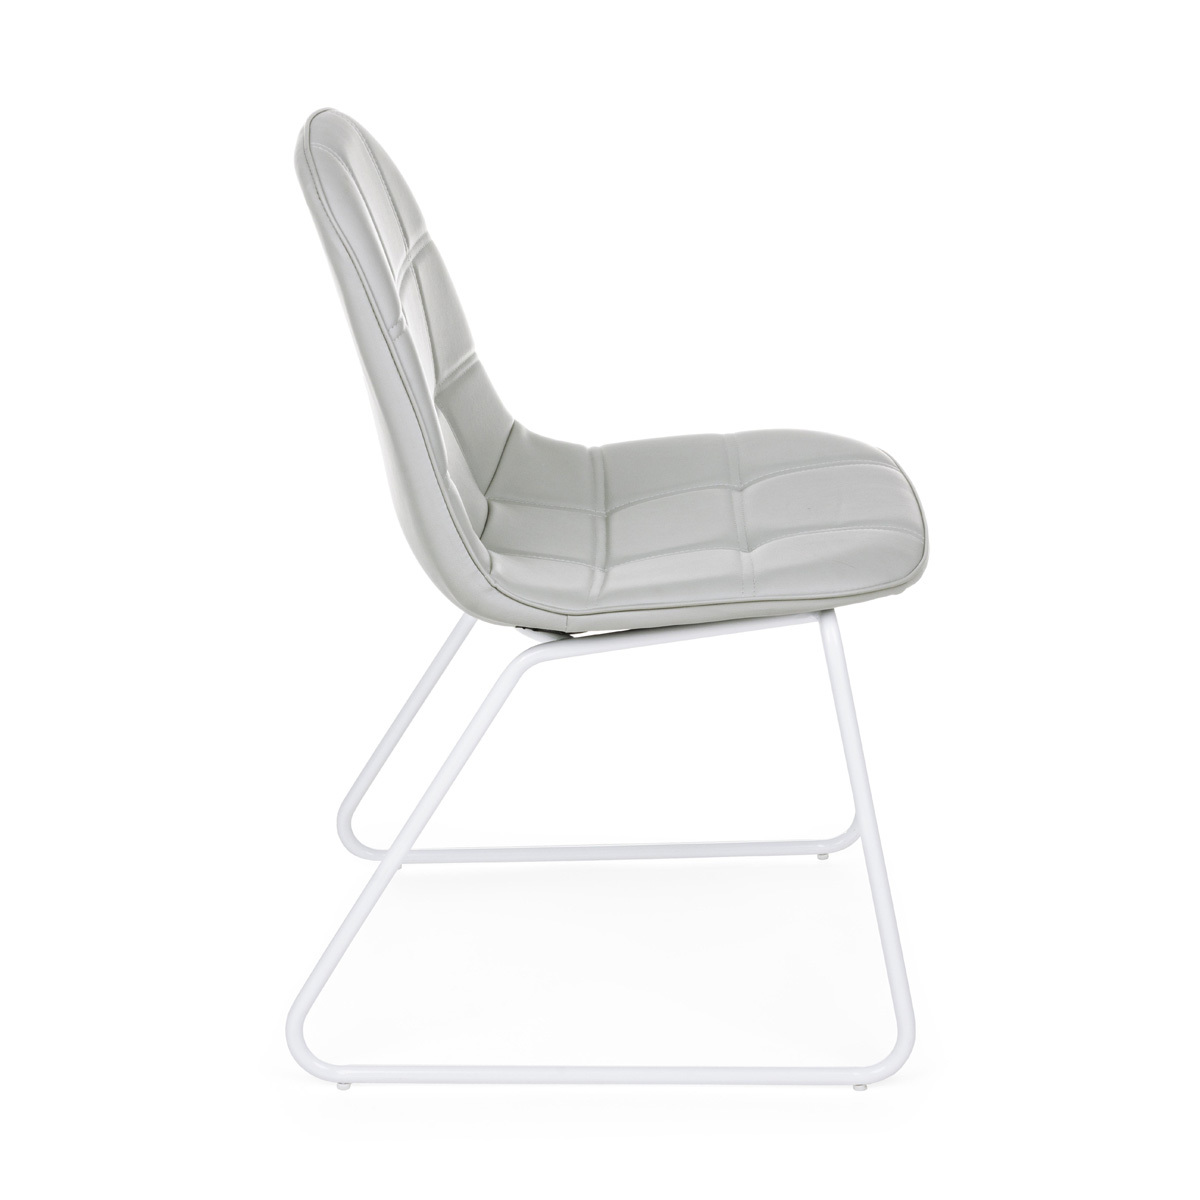 Photos 2: Bizzotto Chair in metal and eco-leather - corda 0731710